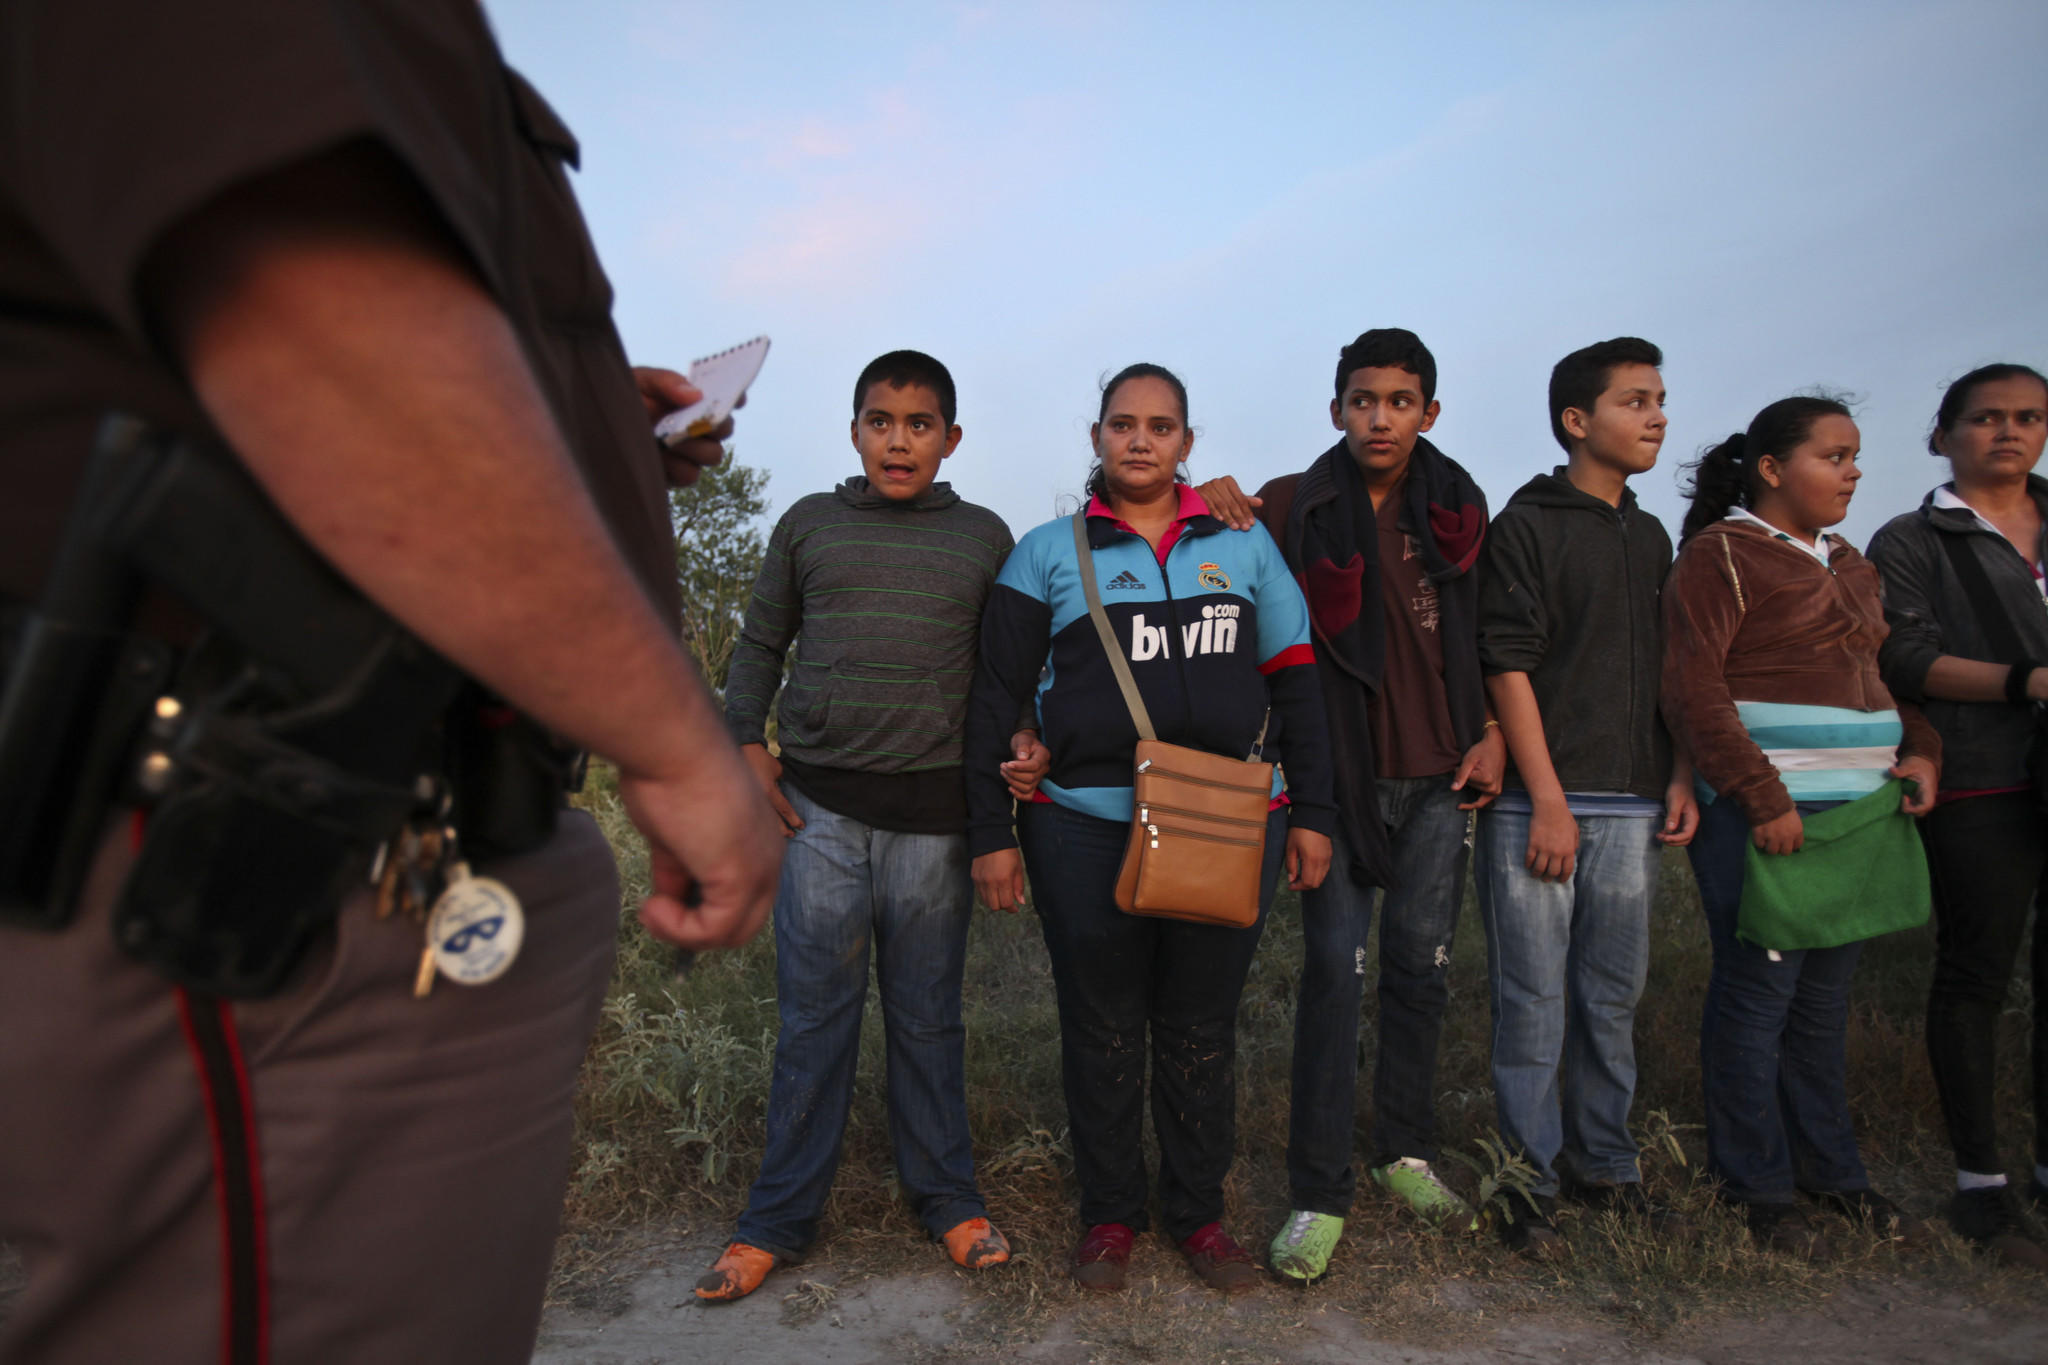 Deputy Ruben Salinas, left, of the Hidlago County Constable Department, questions a group of 16 Guatemalans after they crossed the Rio Grande near Anzalduas Park outside McAllen, Texas.